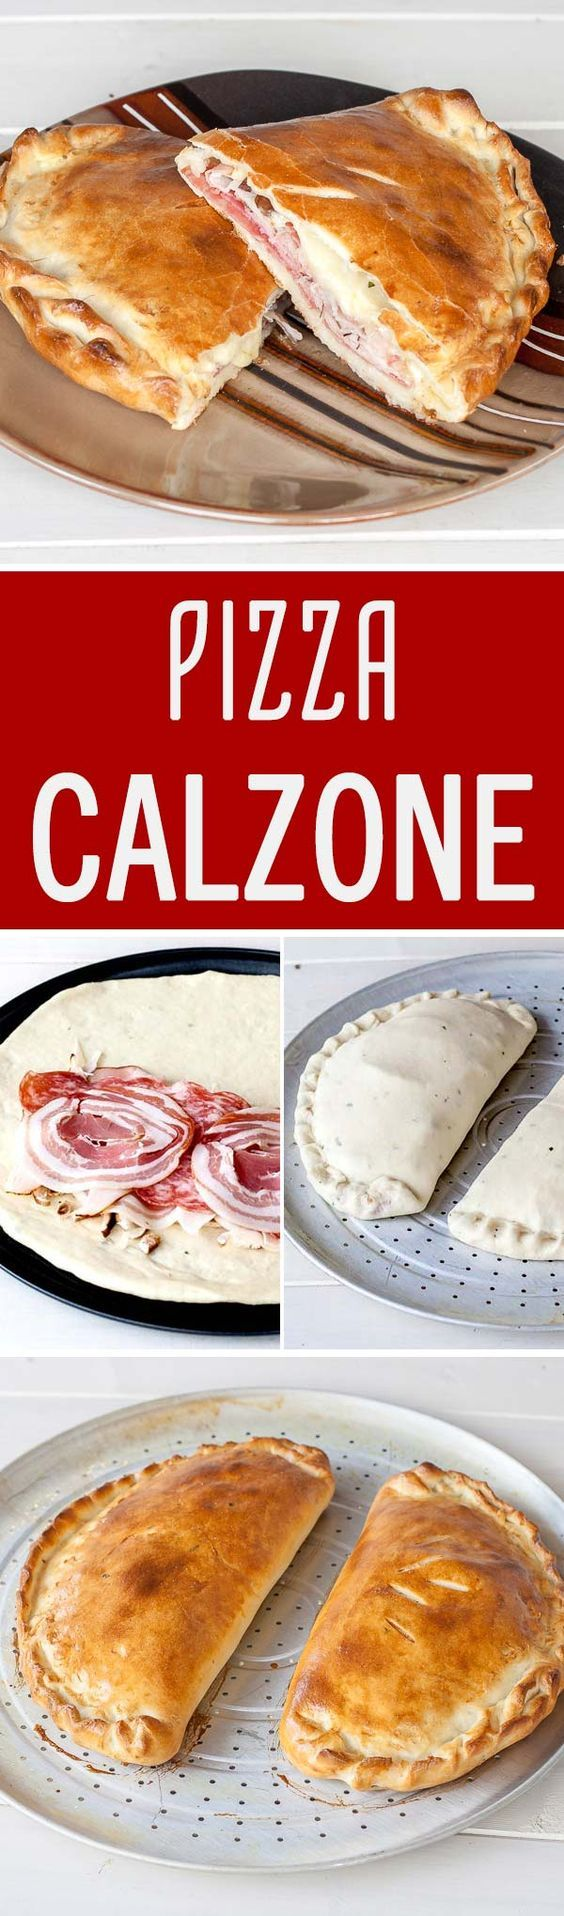 Home-made pizza calzone loaded with various Italian cold cuts, packed into a delicious thin crust sprinkled with fresh oregano, totally made from scratch.